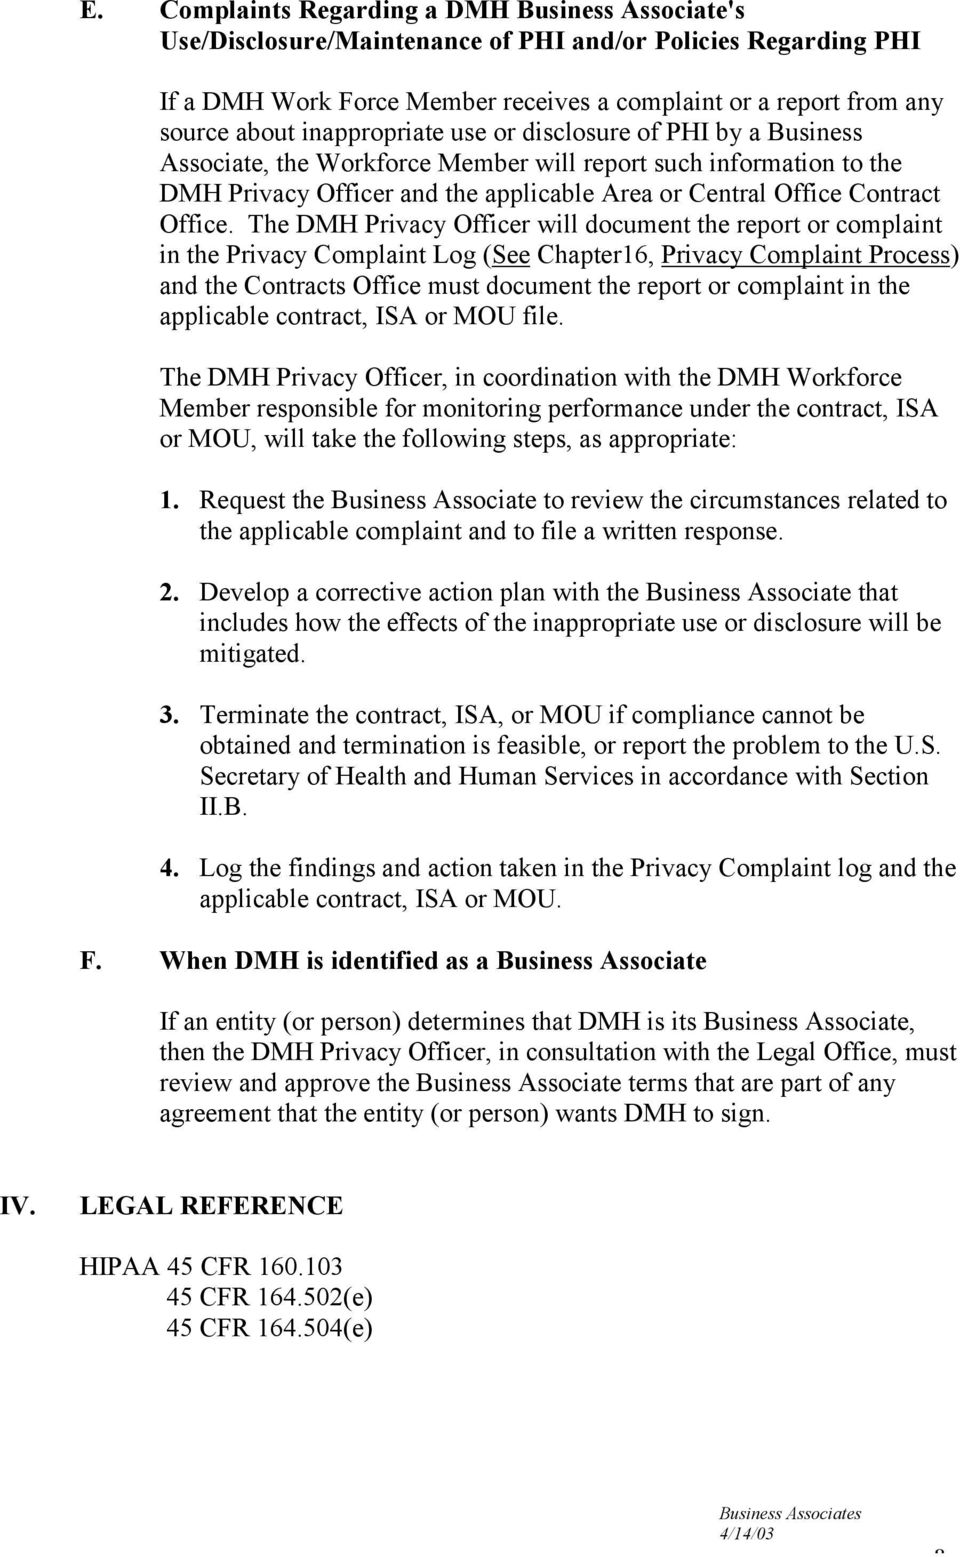 The DMH Privacy Officer will document the report or complaint in the Privacy Complaint Log (See Chapter16, Privacy Complaint Process) and the Contracts Office must document the report or complaint in